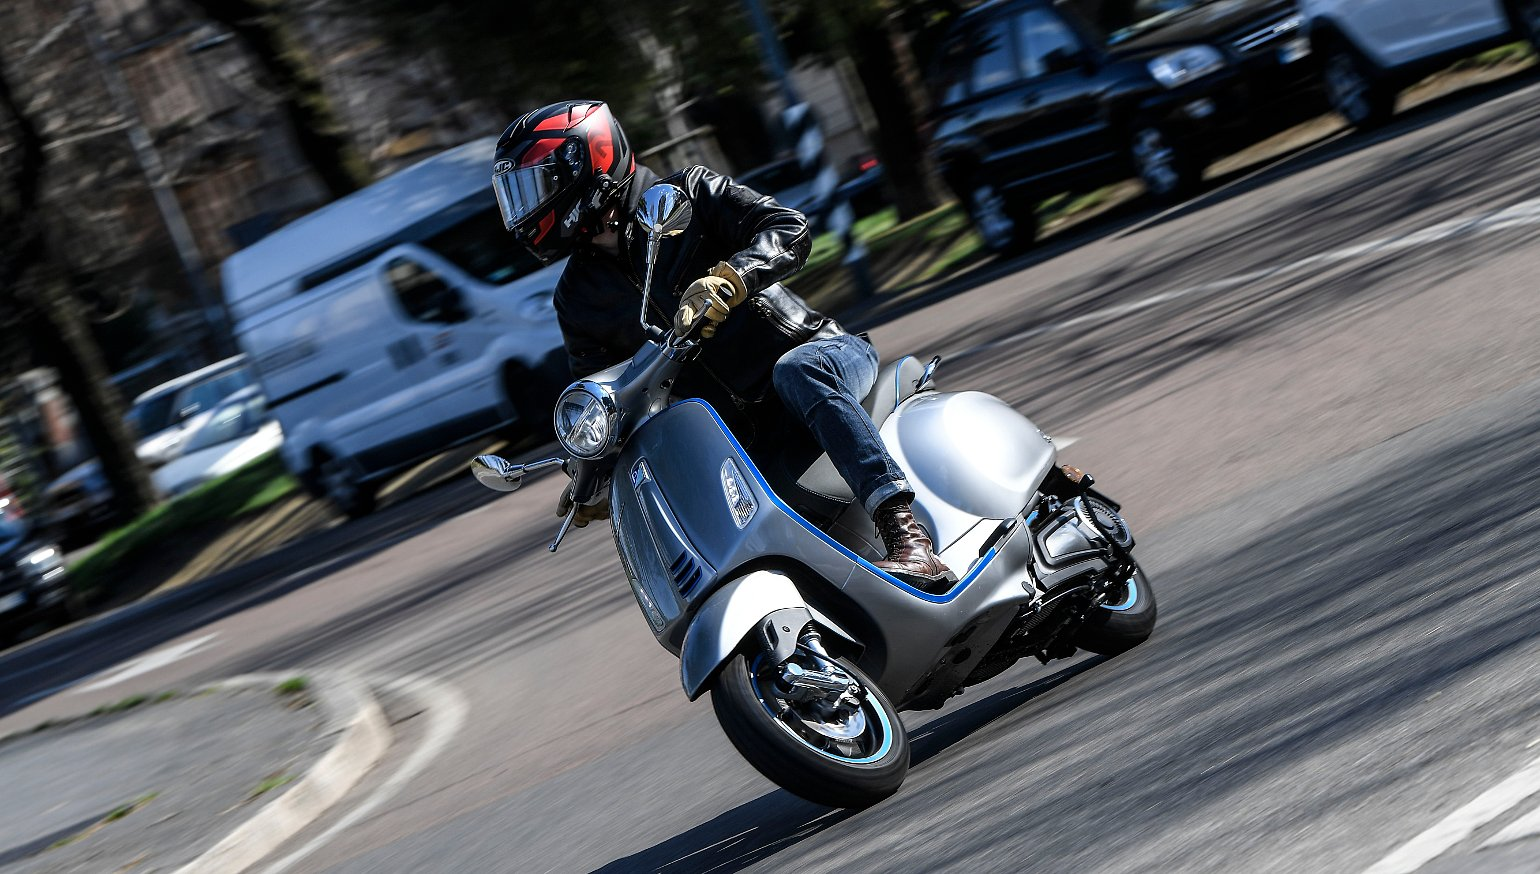 Vespa Elettrica first ride review - RevZilla